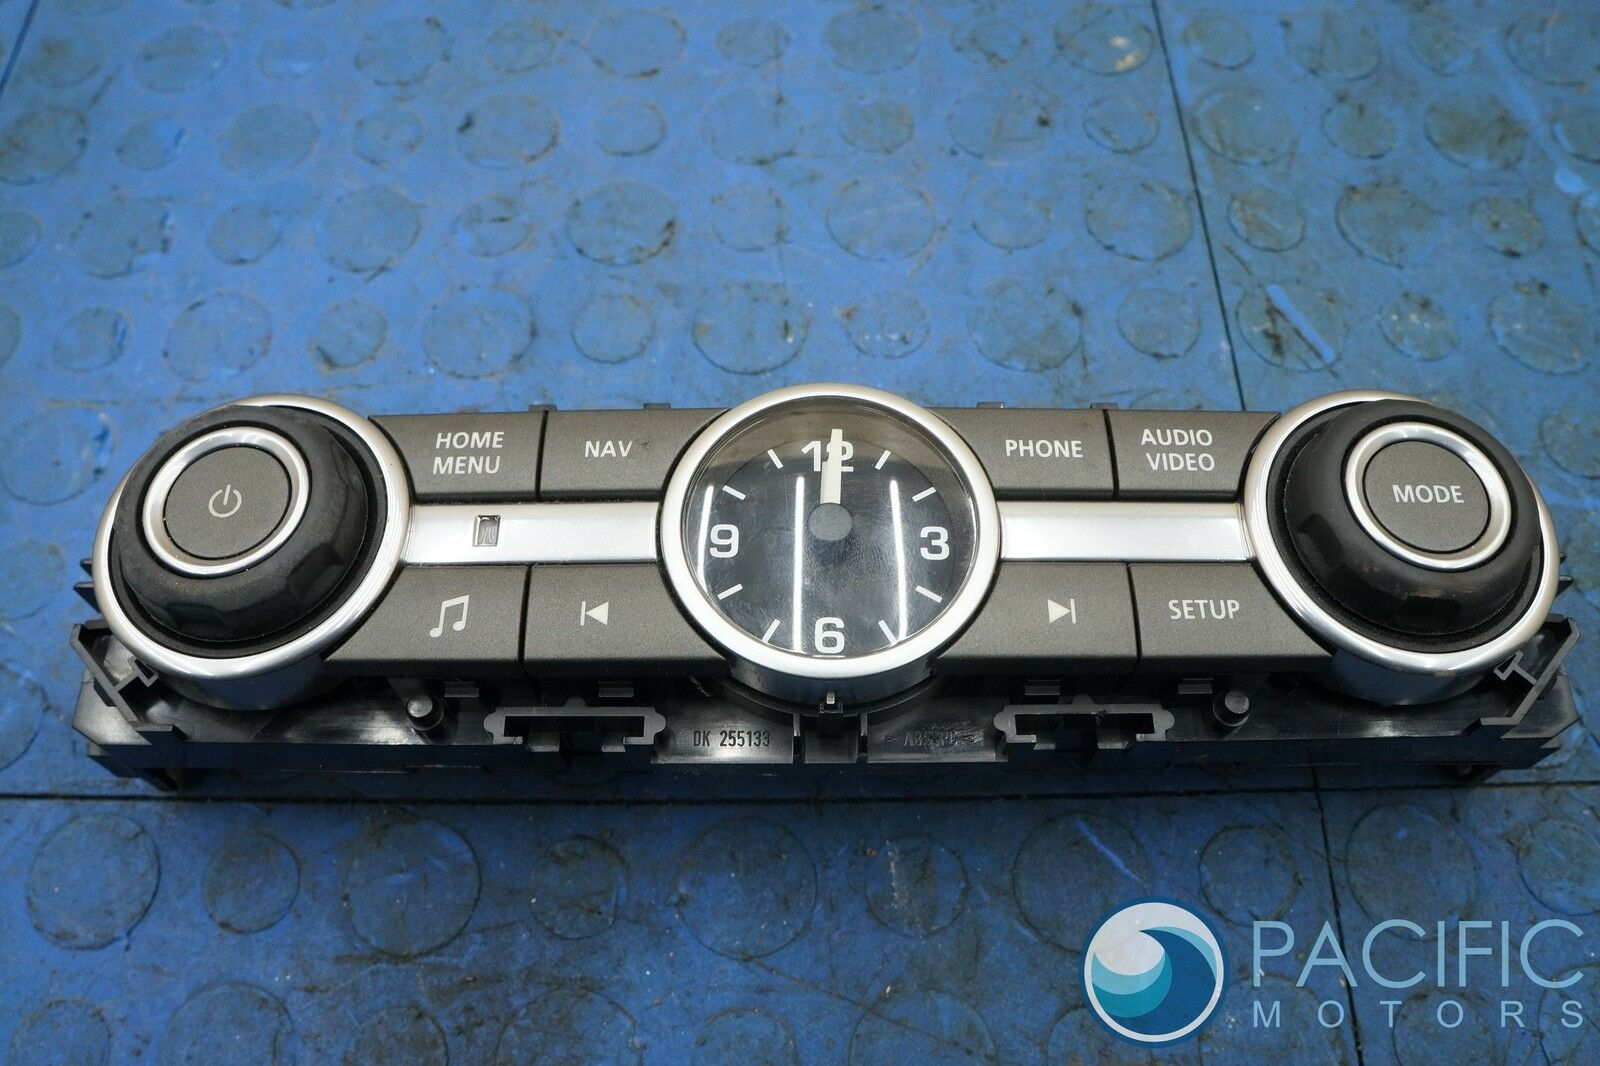 hight resolution of dash sound system radio control switch clock lr029583 land rover